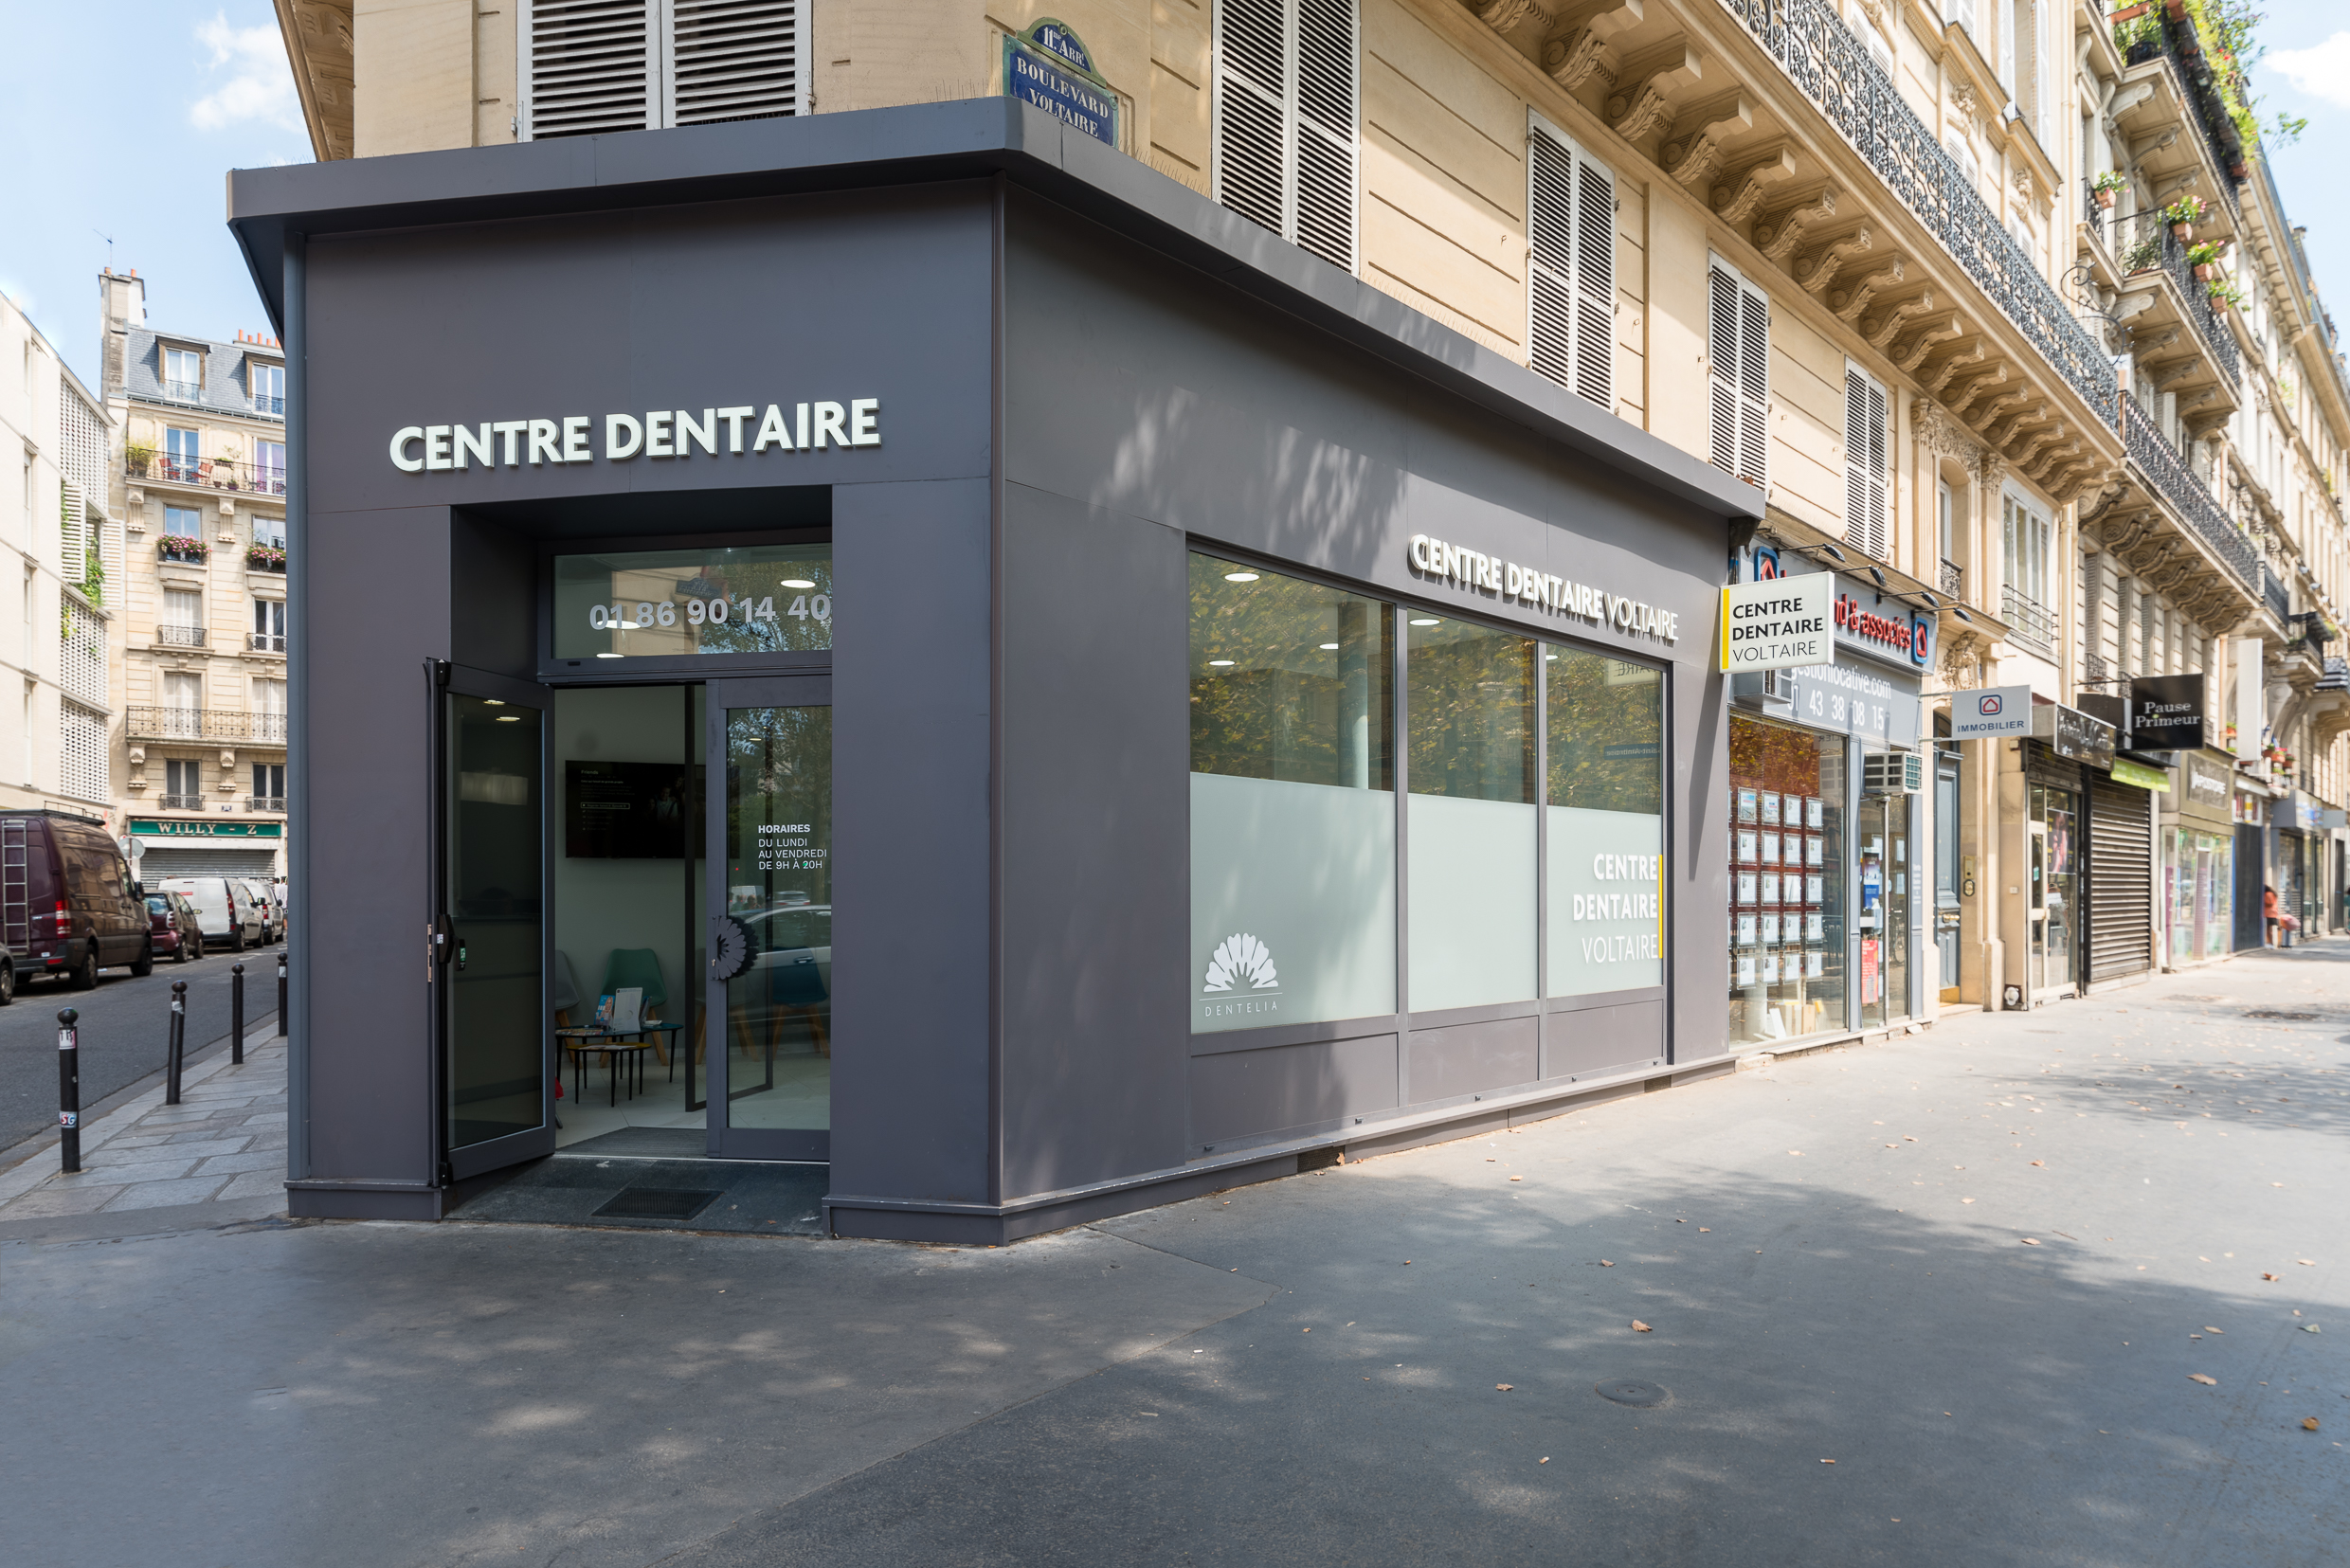 Cabinet Dentaire Levallois Centre Dentaire Voltaire Dentelia Centre Dentaire à Paris